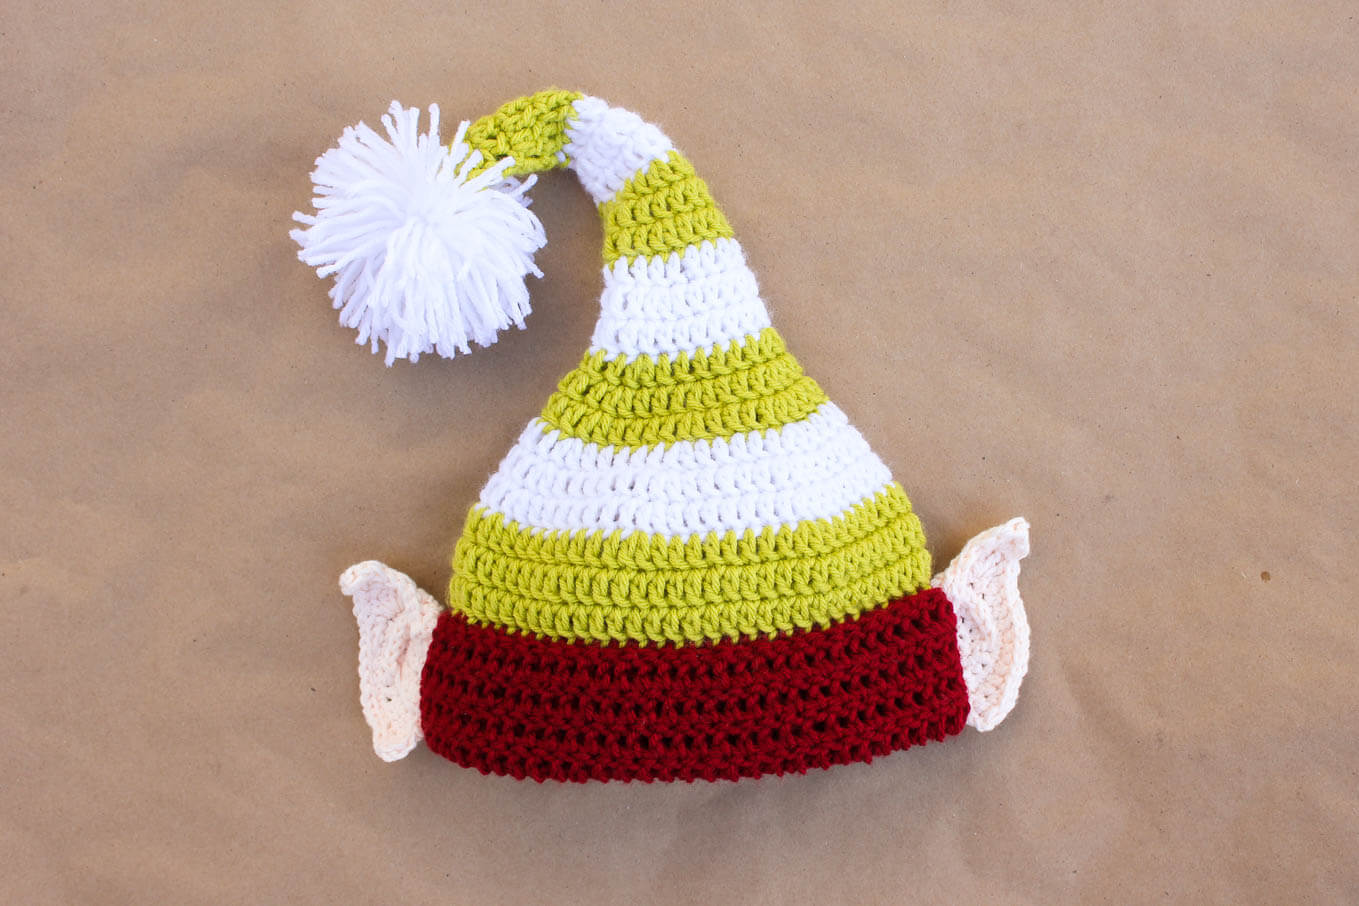 elf hat pattern why a crochet elf hat pattern with little pointy ears ...